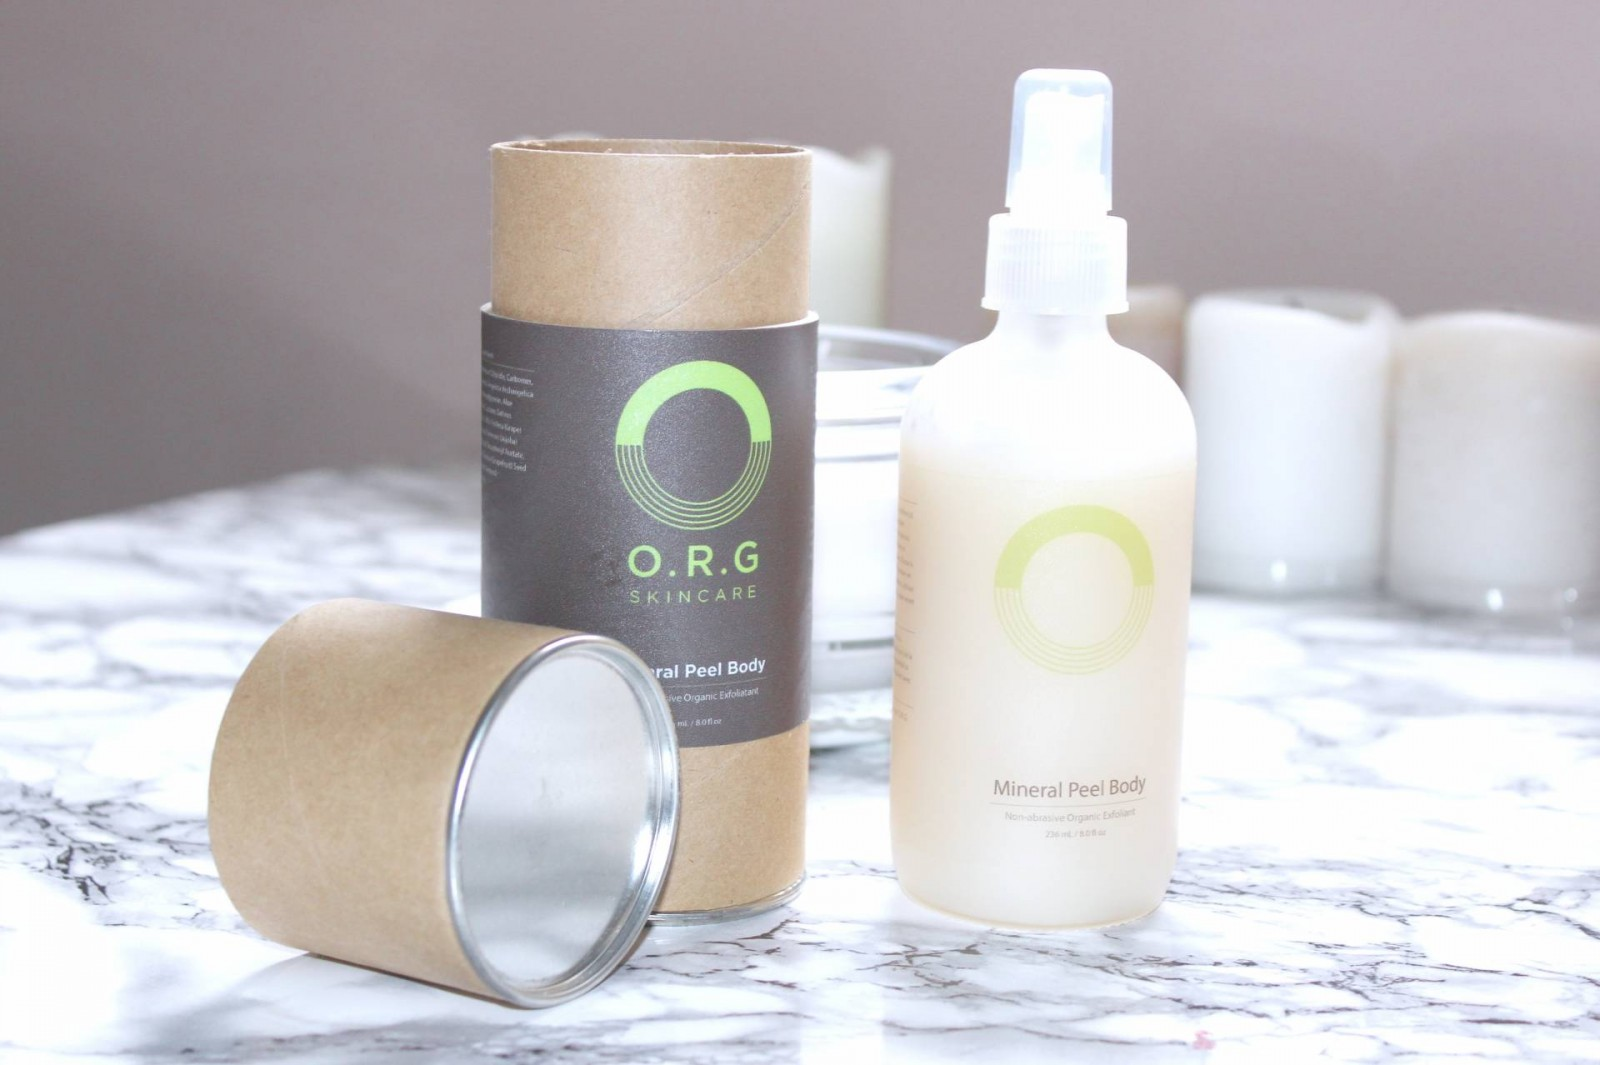 ORG Mineral Peel Body